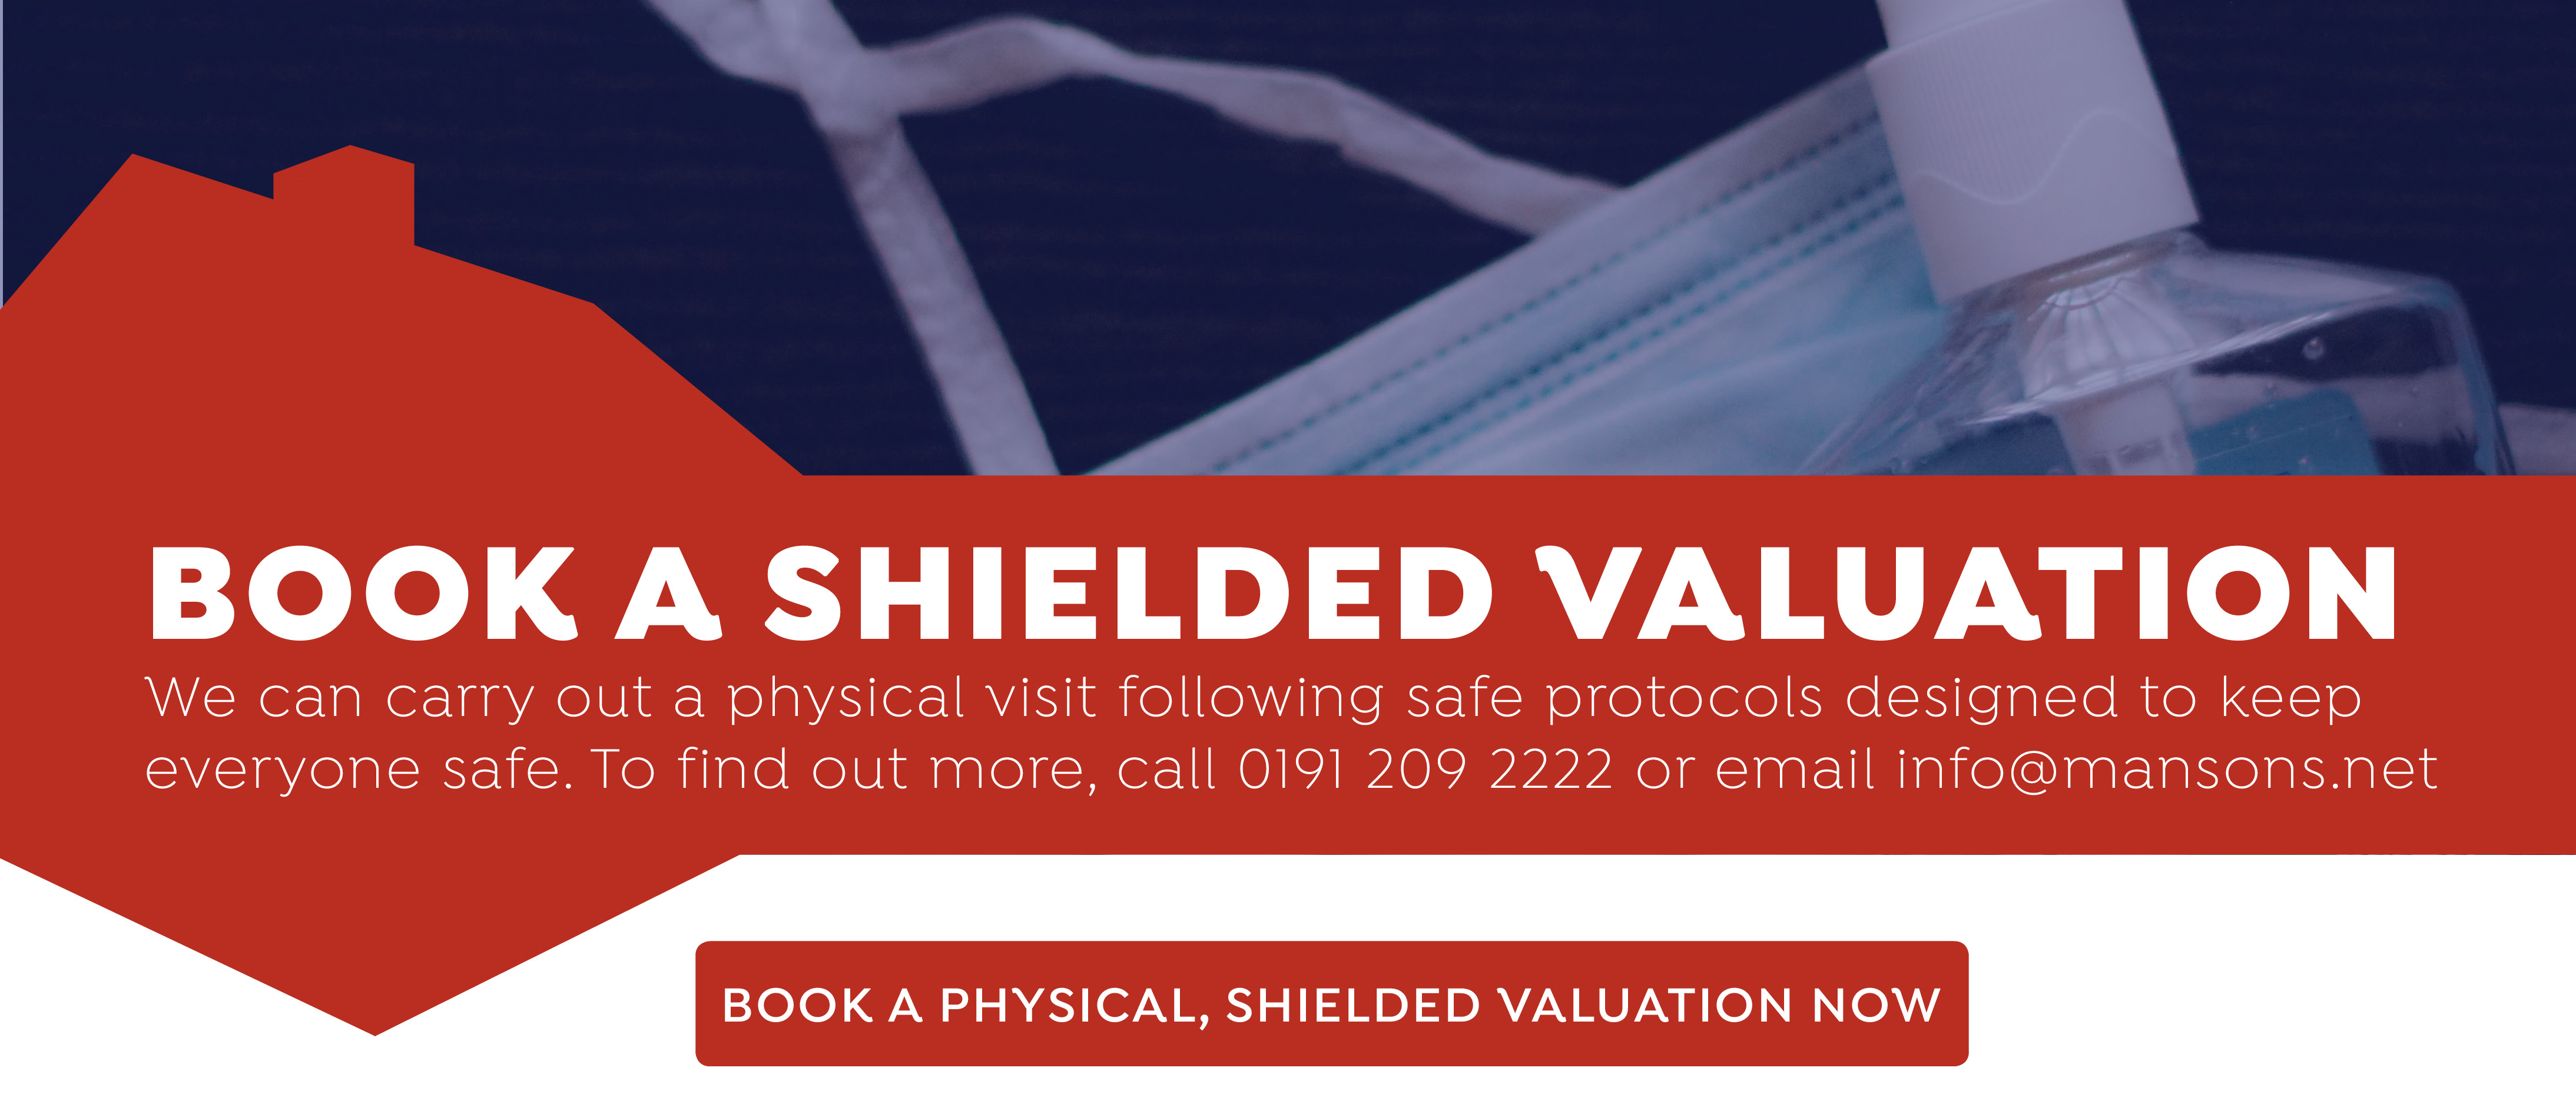 manson_shielded_valuation_website_banner